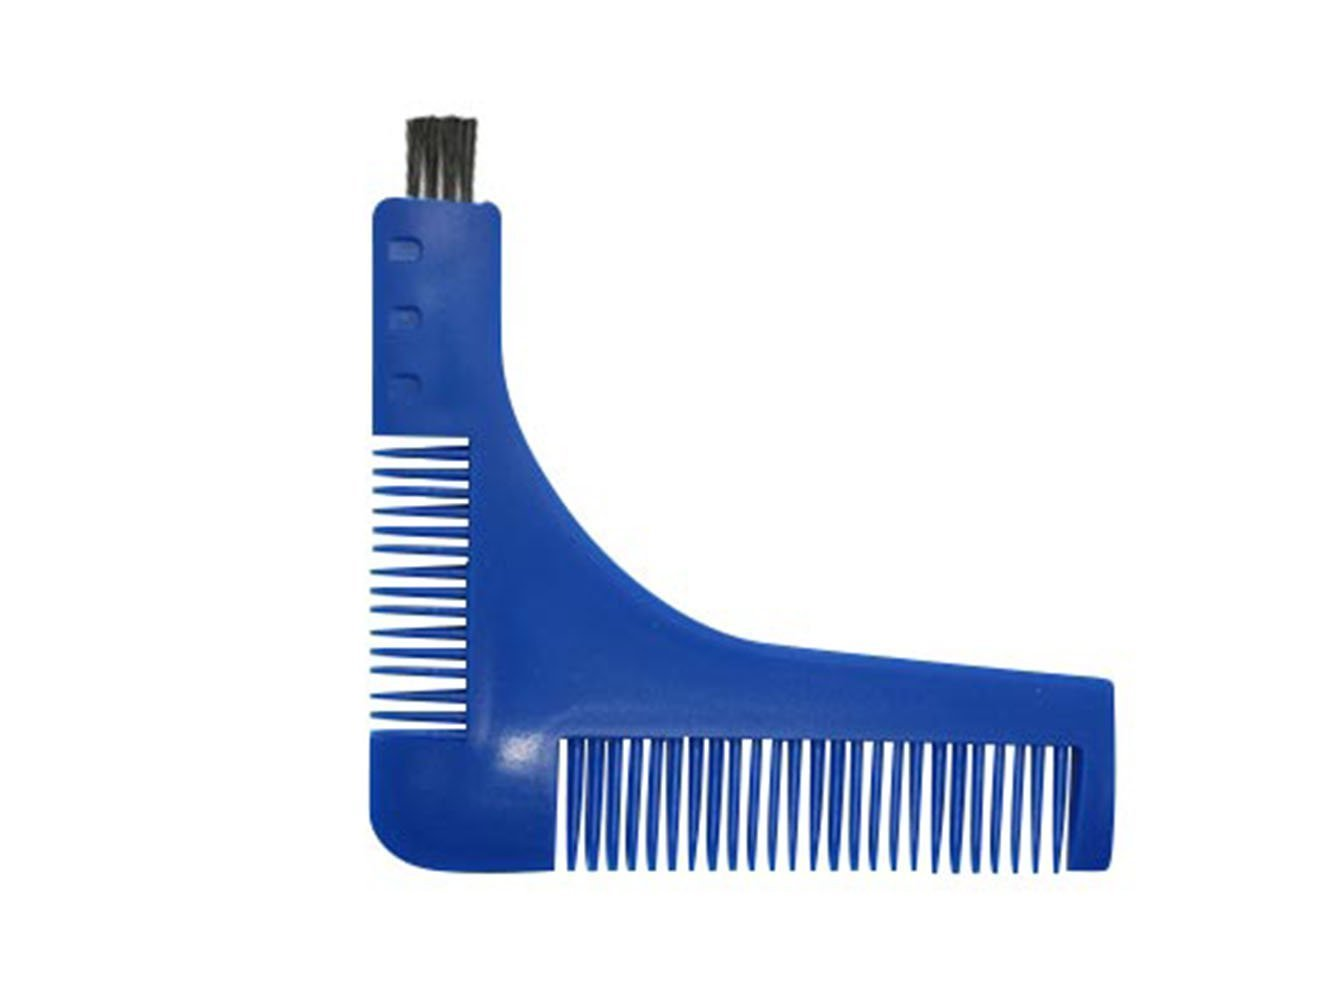 KingNew Beard Styling Template Comb Tool Perfect Lines Symmetry Shape Face Neck Line Moustache comb (Royal blue)